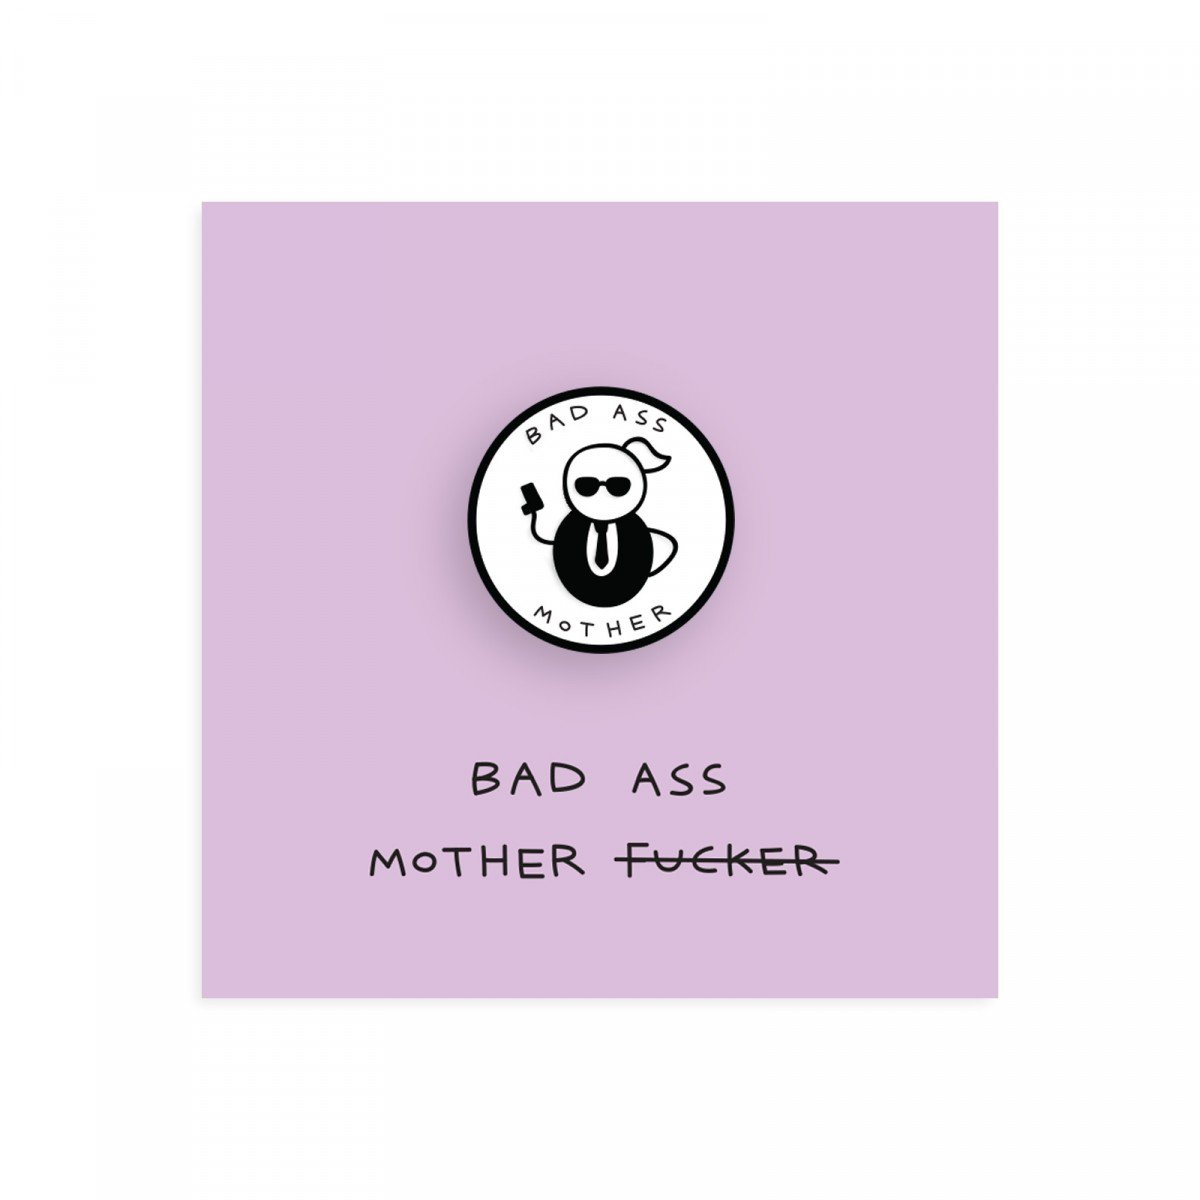 Decorating red door gifts photos : Bad Ass Mother Pin - Gifts Under £10, ▻What's New, Shop By Theme ...